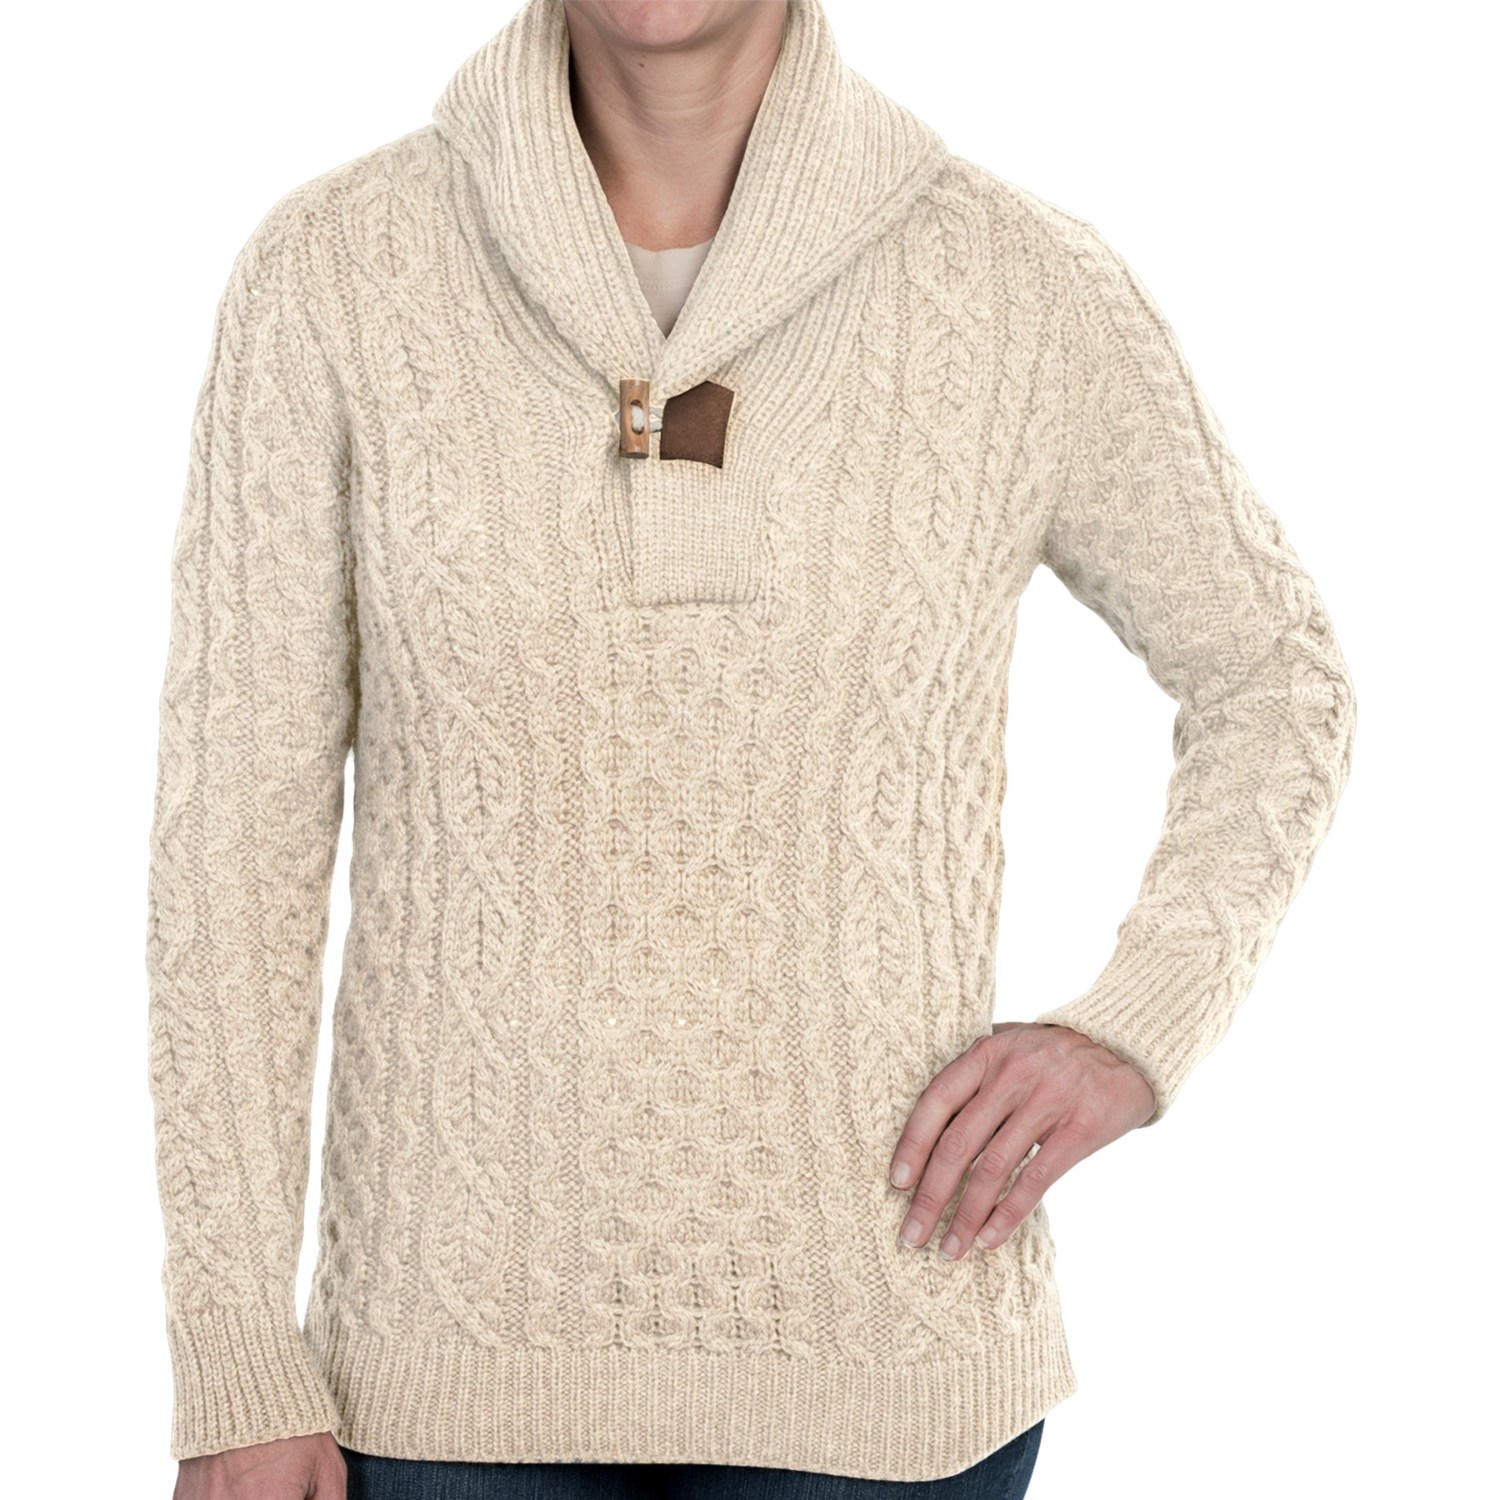 Glenaran Irish Market has 6 large retail stores in Ireland and is your one stop shop for a wide range of Irish Sweaters, Irish Crafts & Gifts and Irish knit Sweaters. An Irish Family business now in .